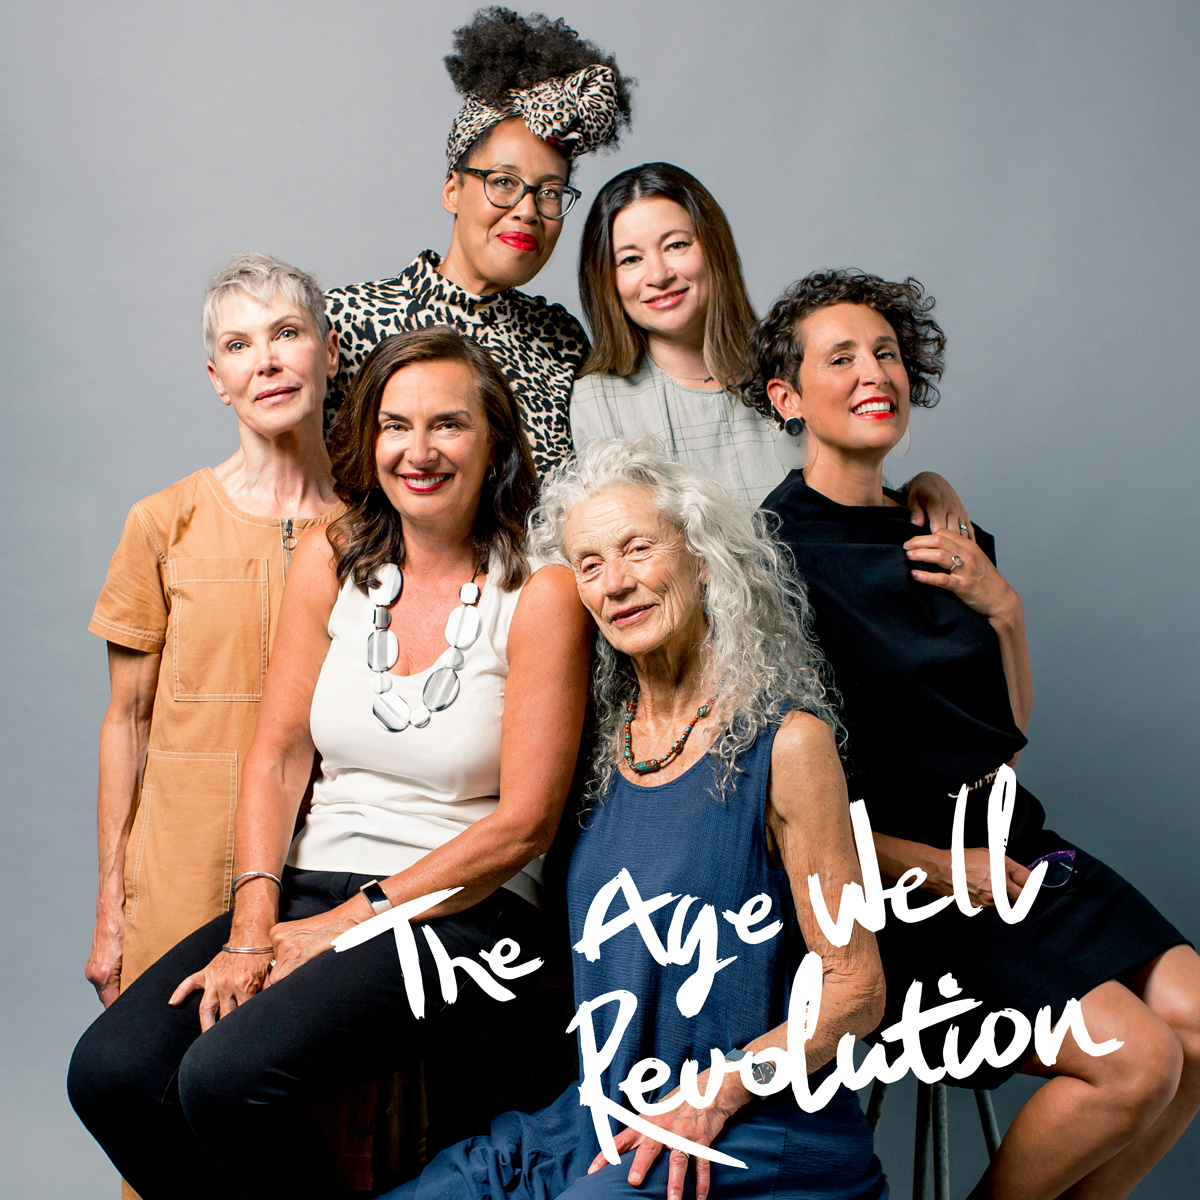 Neal's Yard Remedies Age Well Revolution #AD